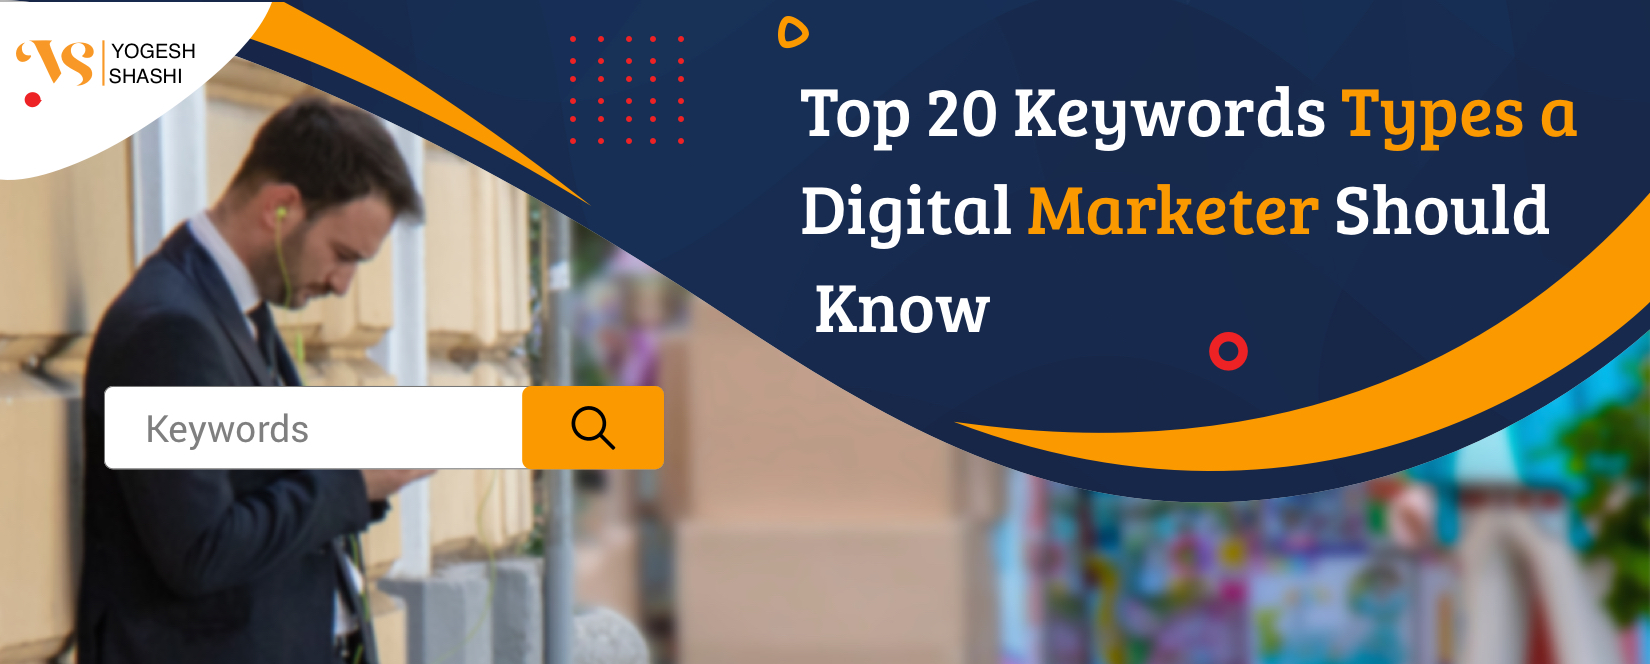 Top-20-Keyword-Types-a-Digital-Marketer-Should-Know